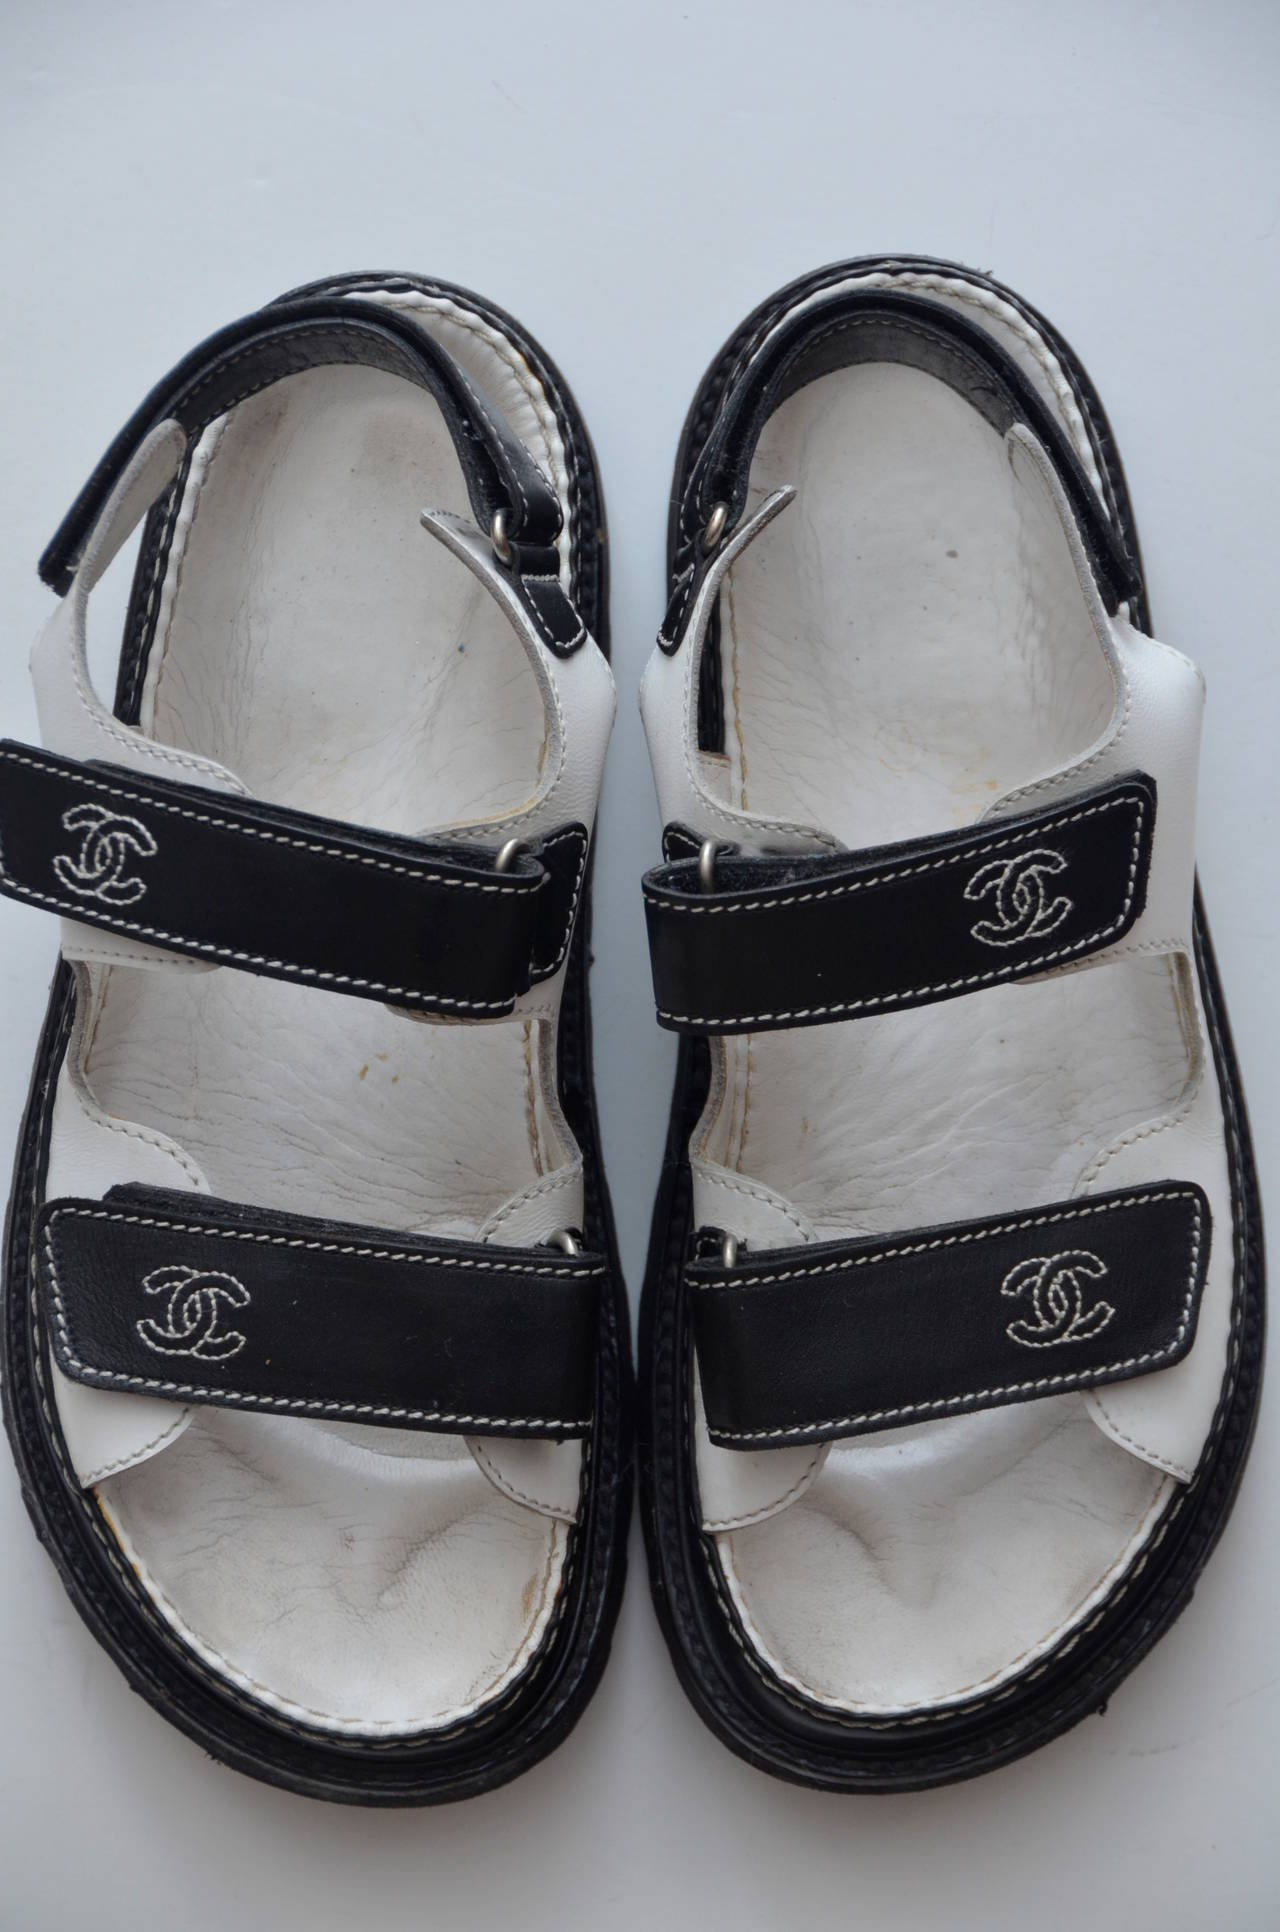 Chanel Quot Birkenstock Quot Sandals Shoes 38 At 1stdibs